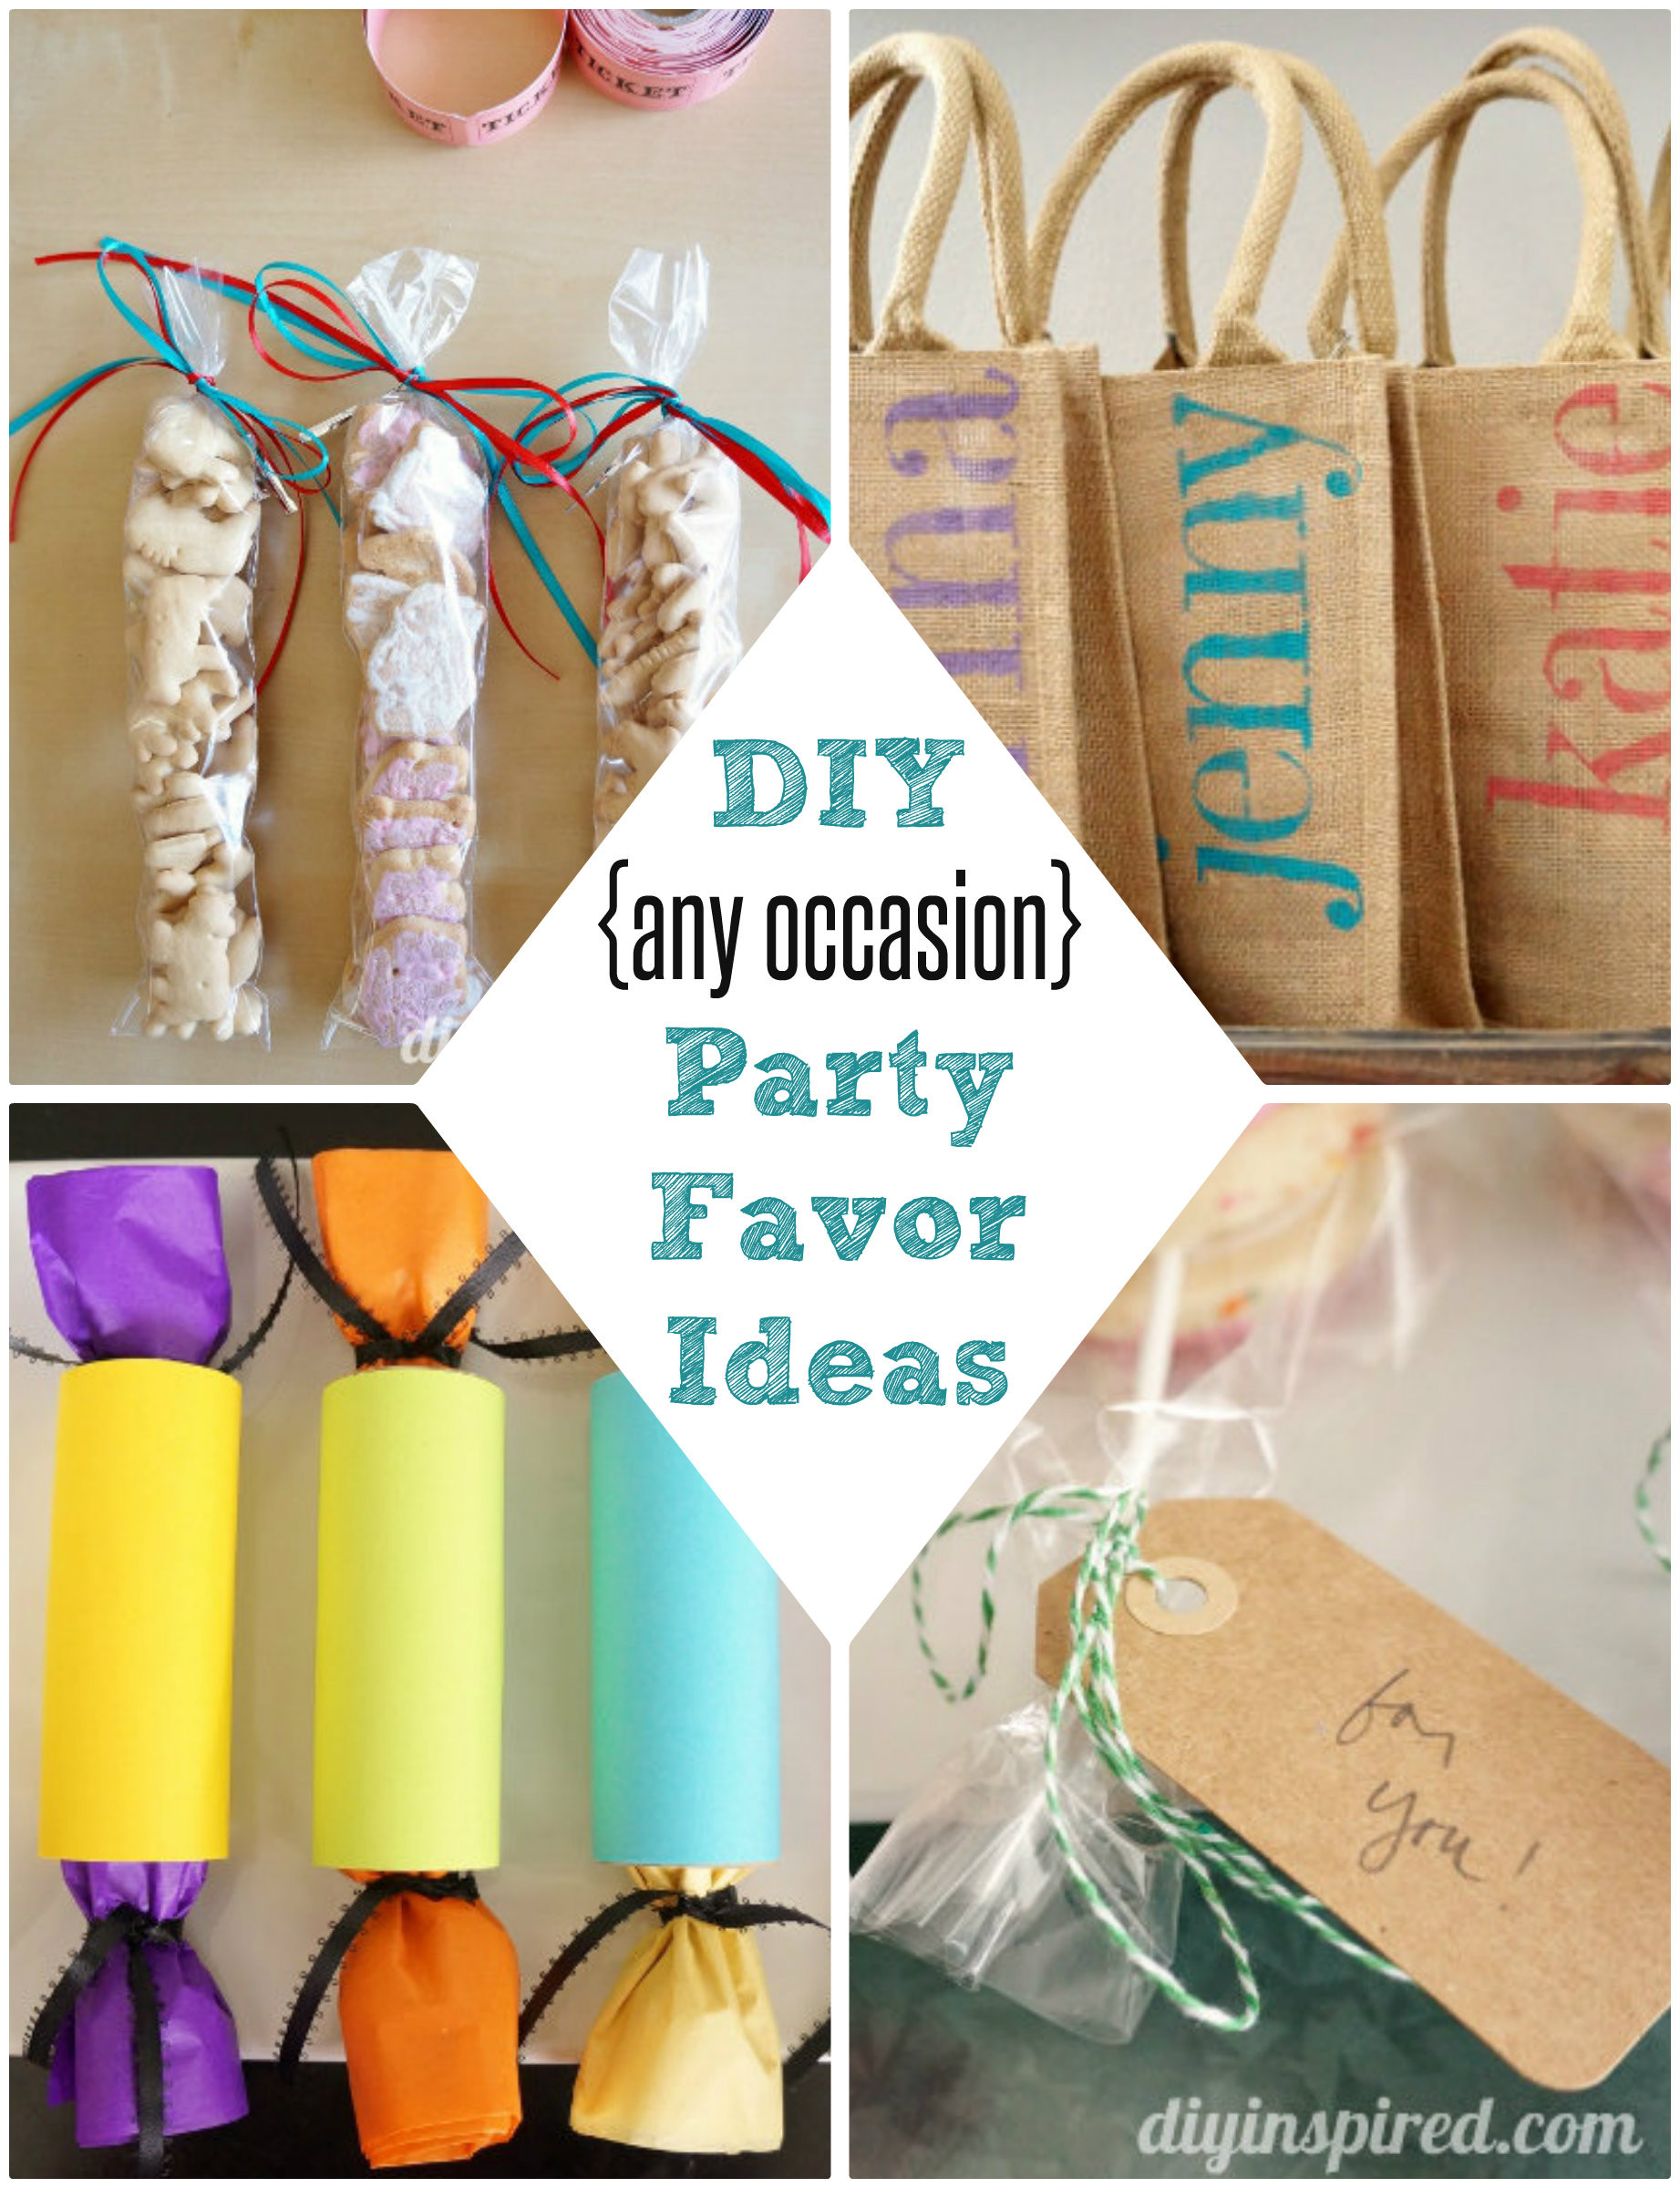 Best ideas about DIY Party Favors . Save or Pin DIY Party Favor Ideas DIY Inspired Now.